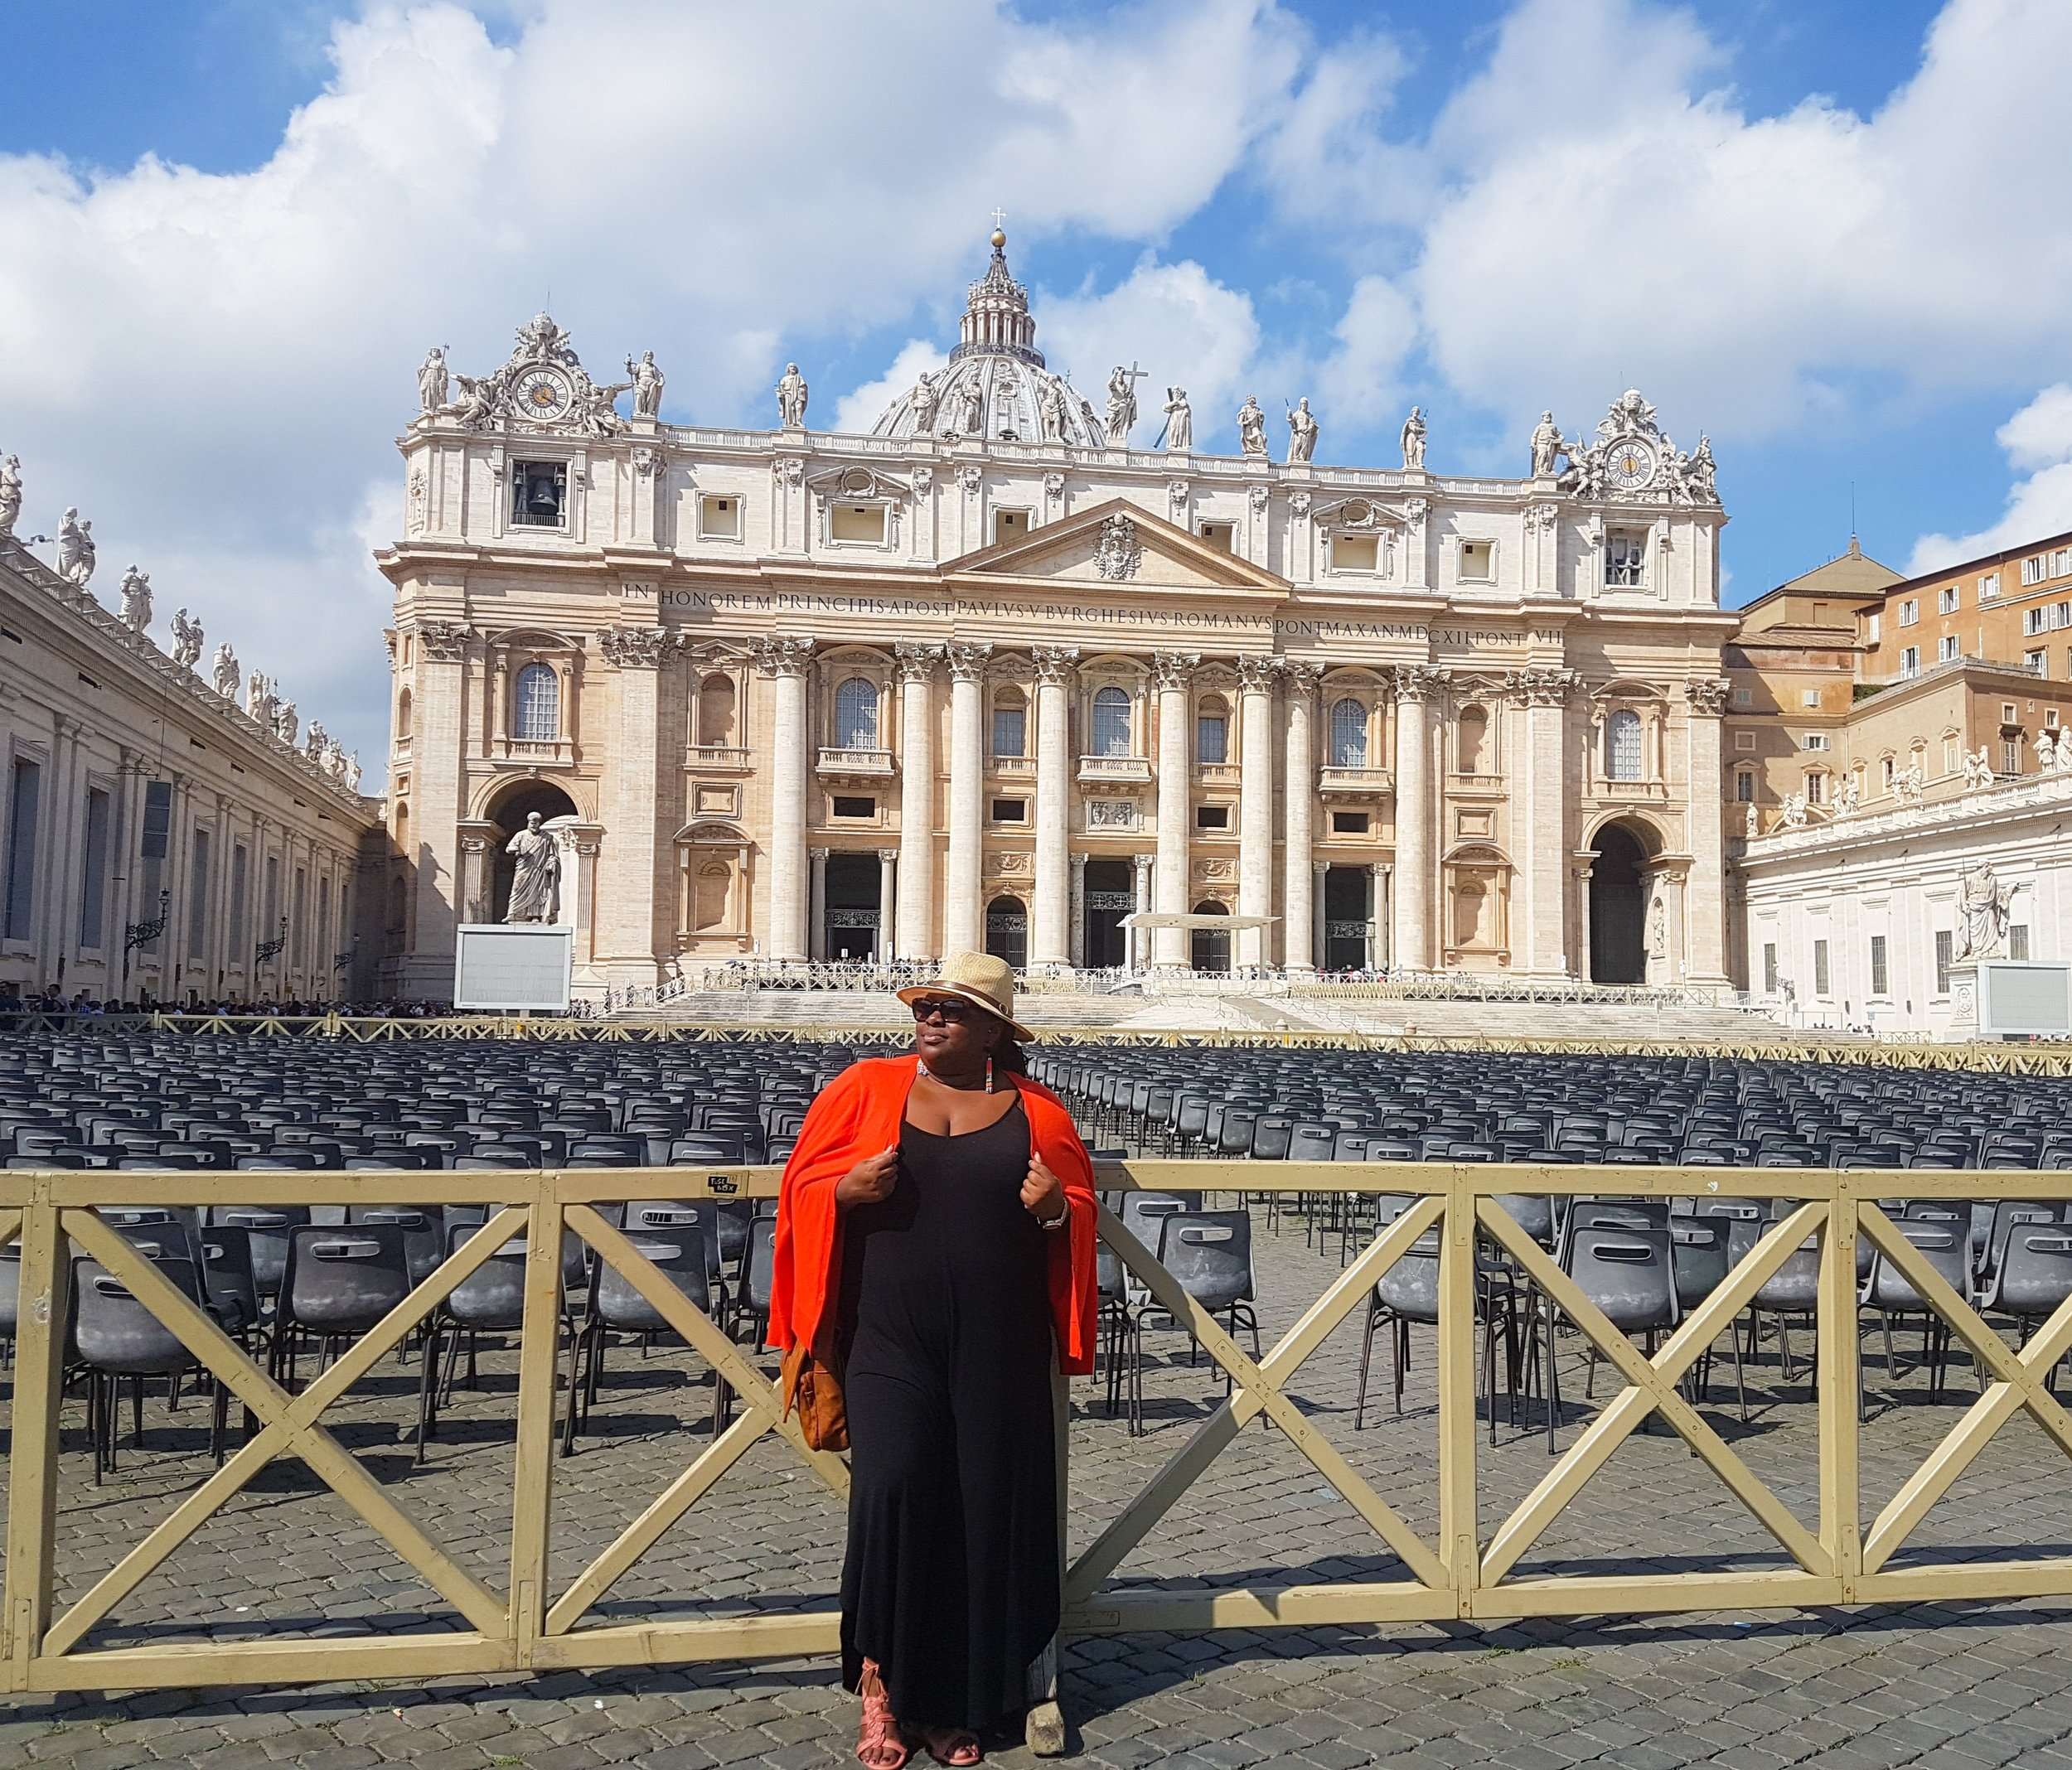 Pimpin at the Vatican. So where's the Pope at?